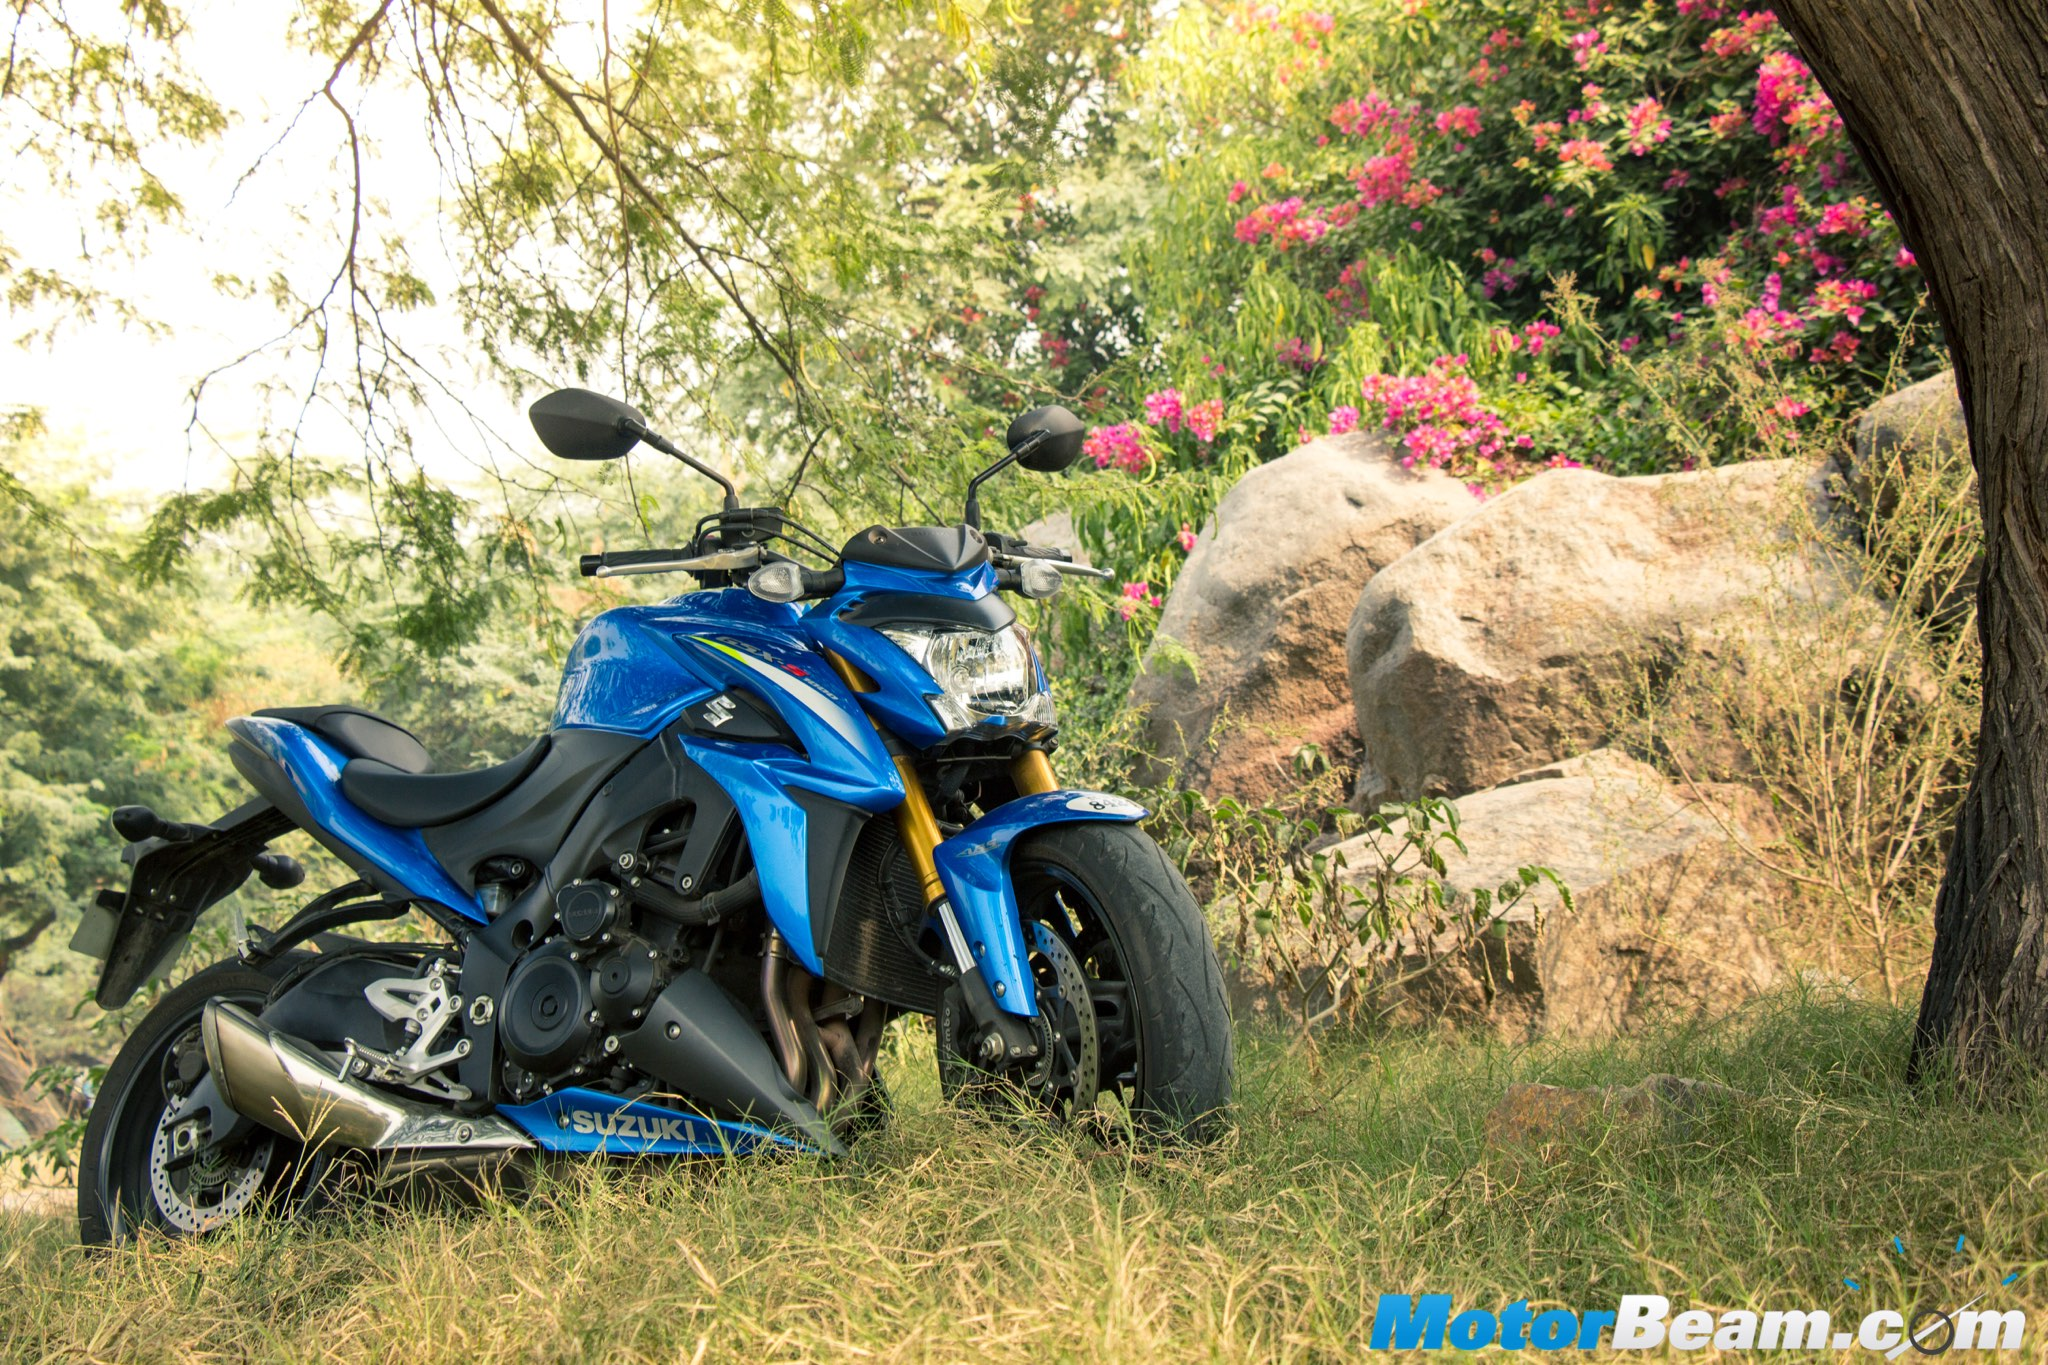 Suzuki GSX-S1000 Test Ride Review